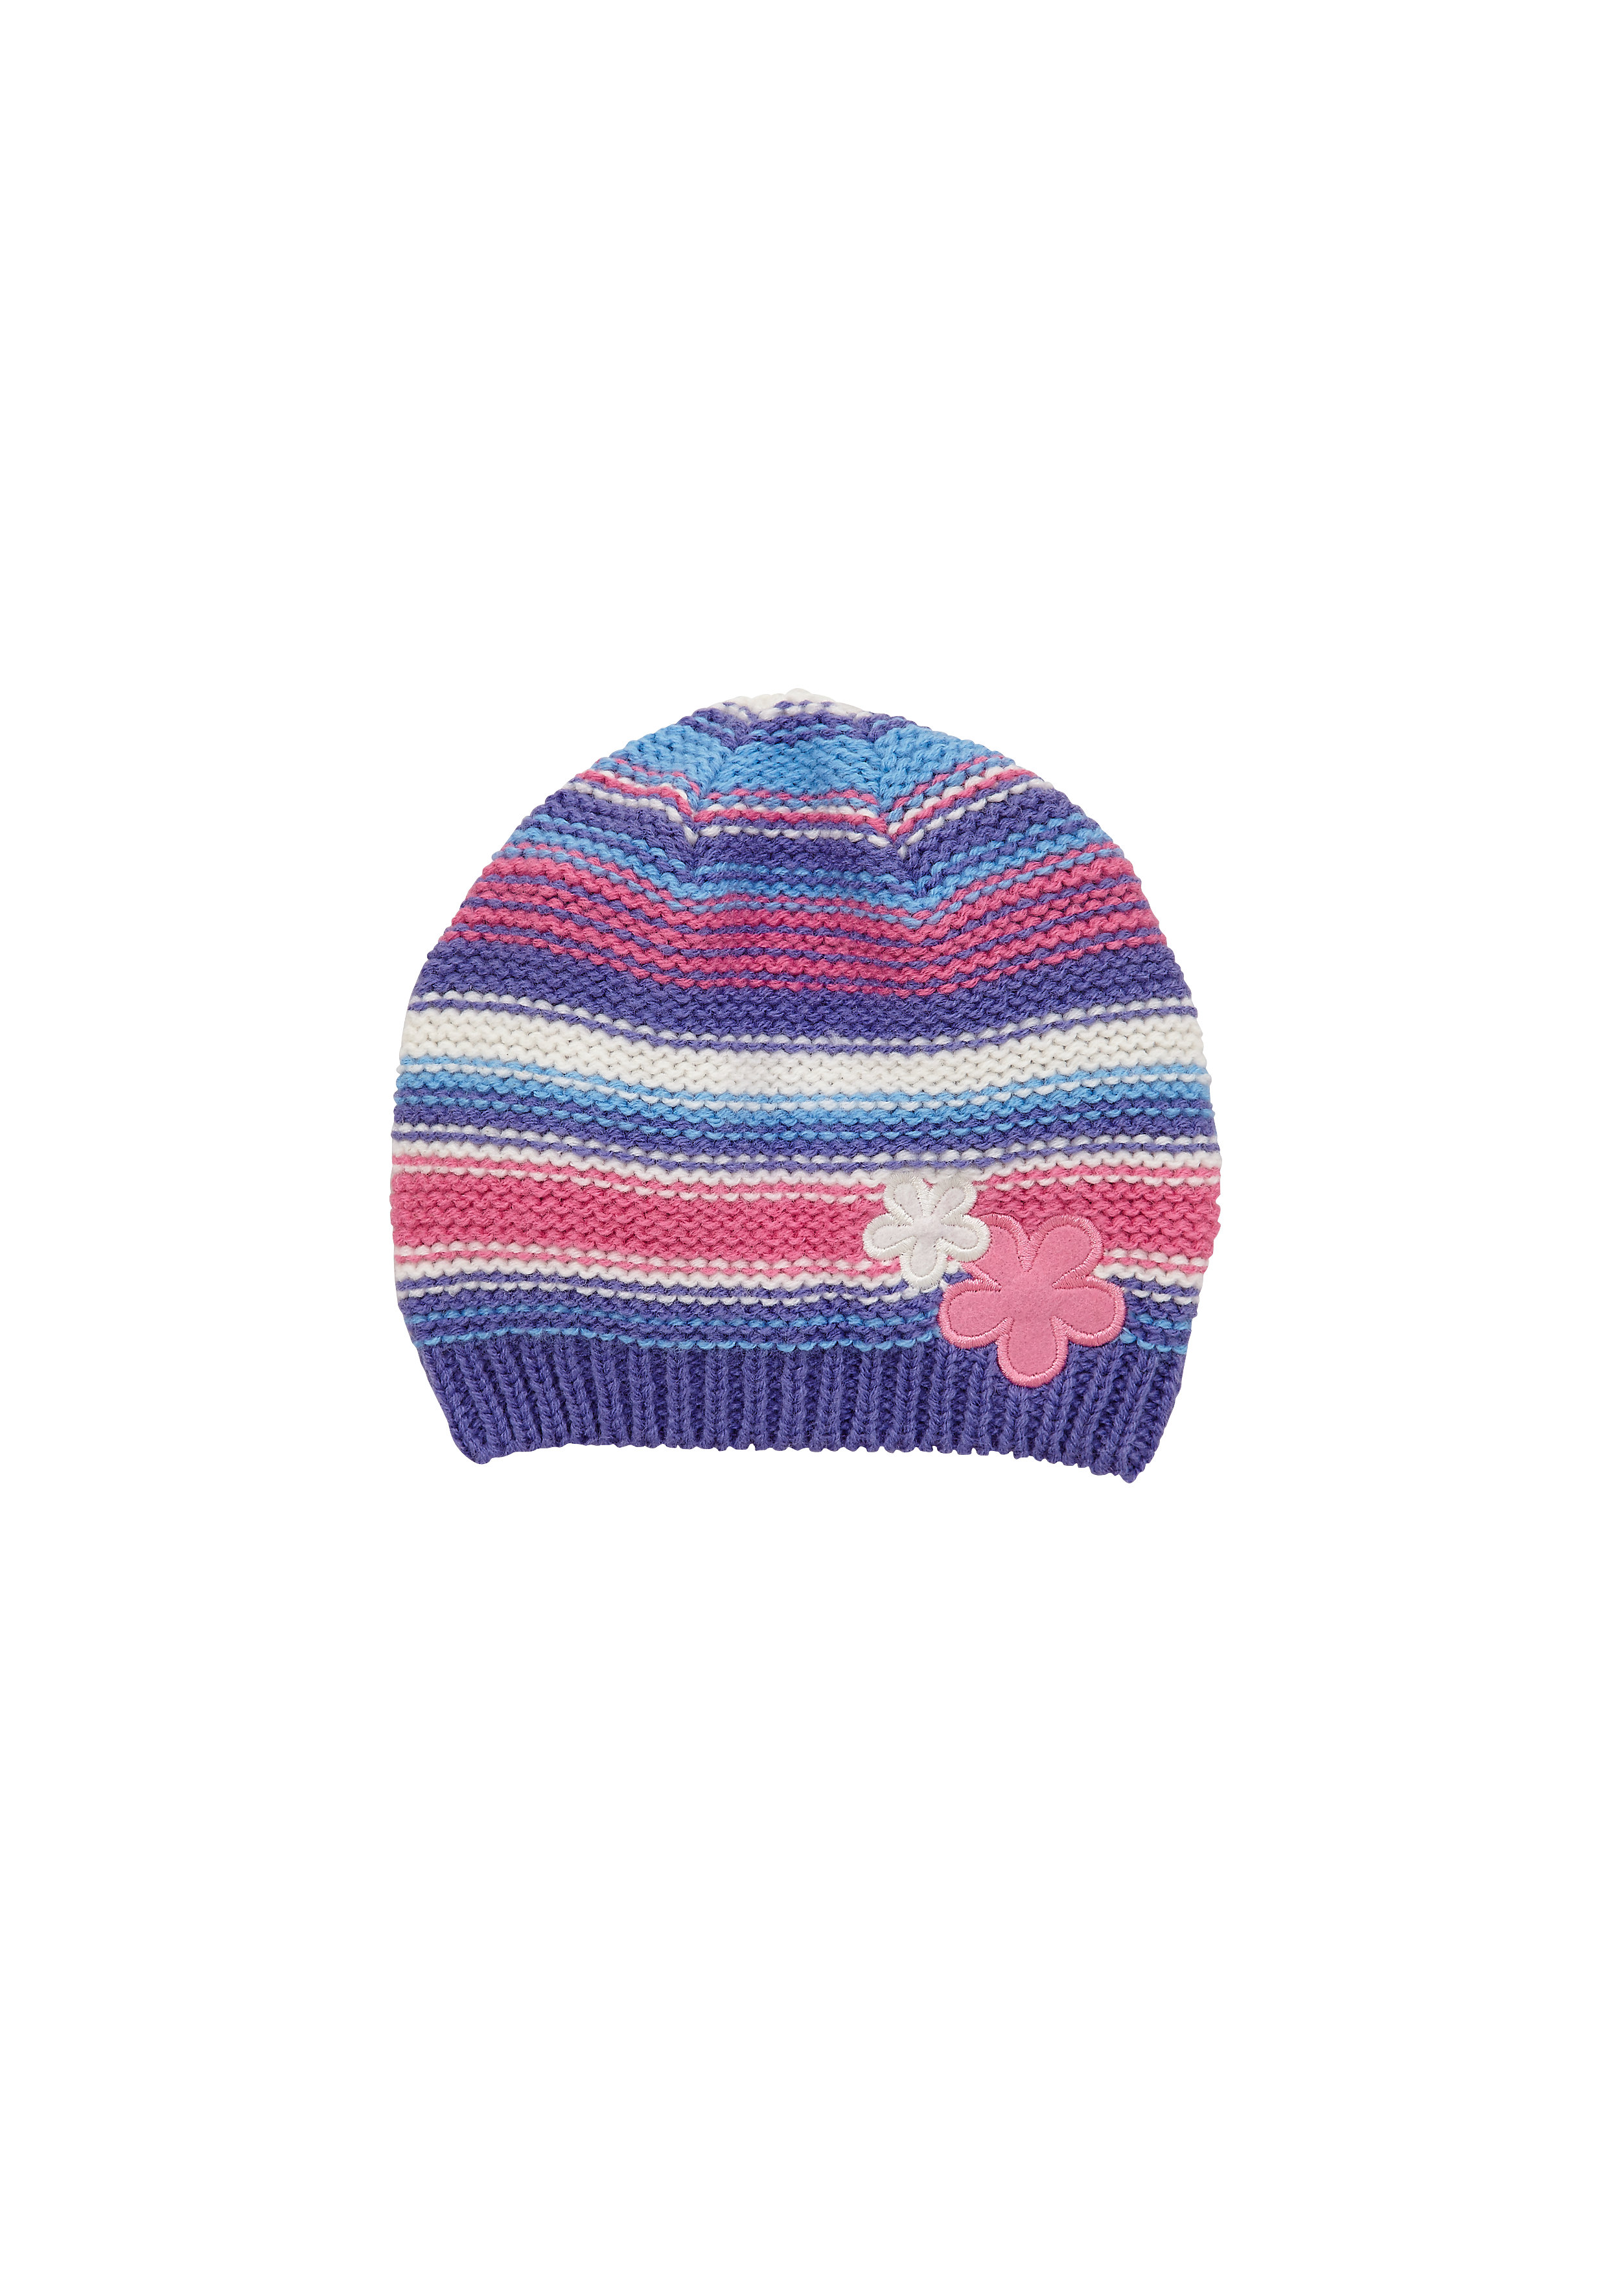 Mothercare | Girls Knitted Flower Beanie Hat - Green